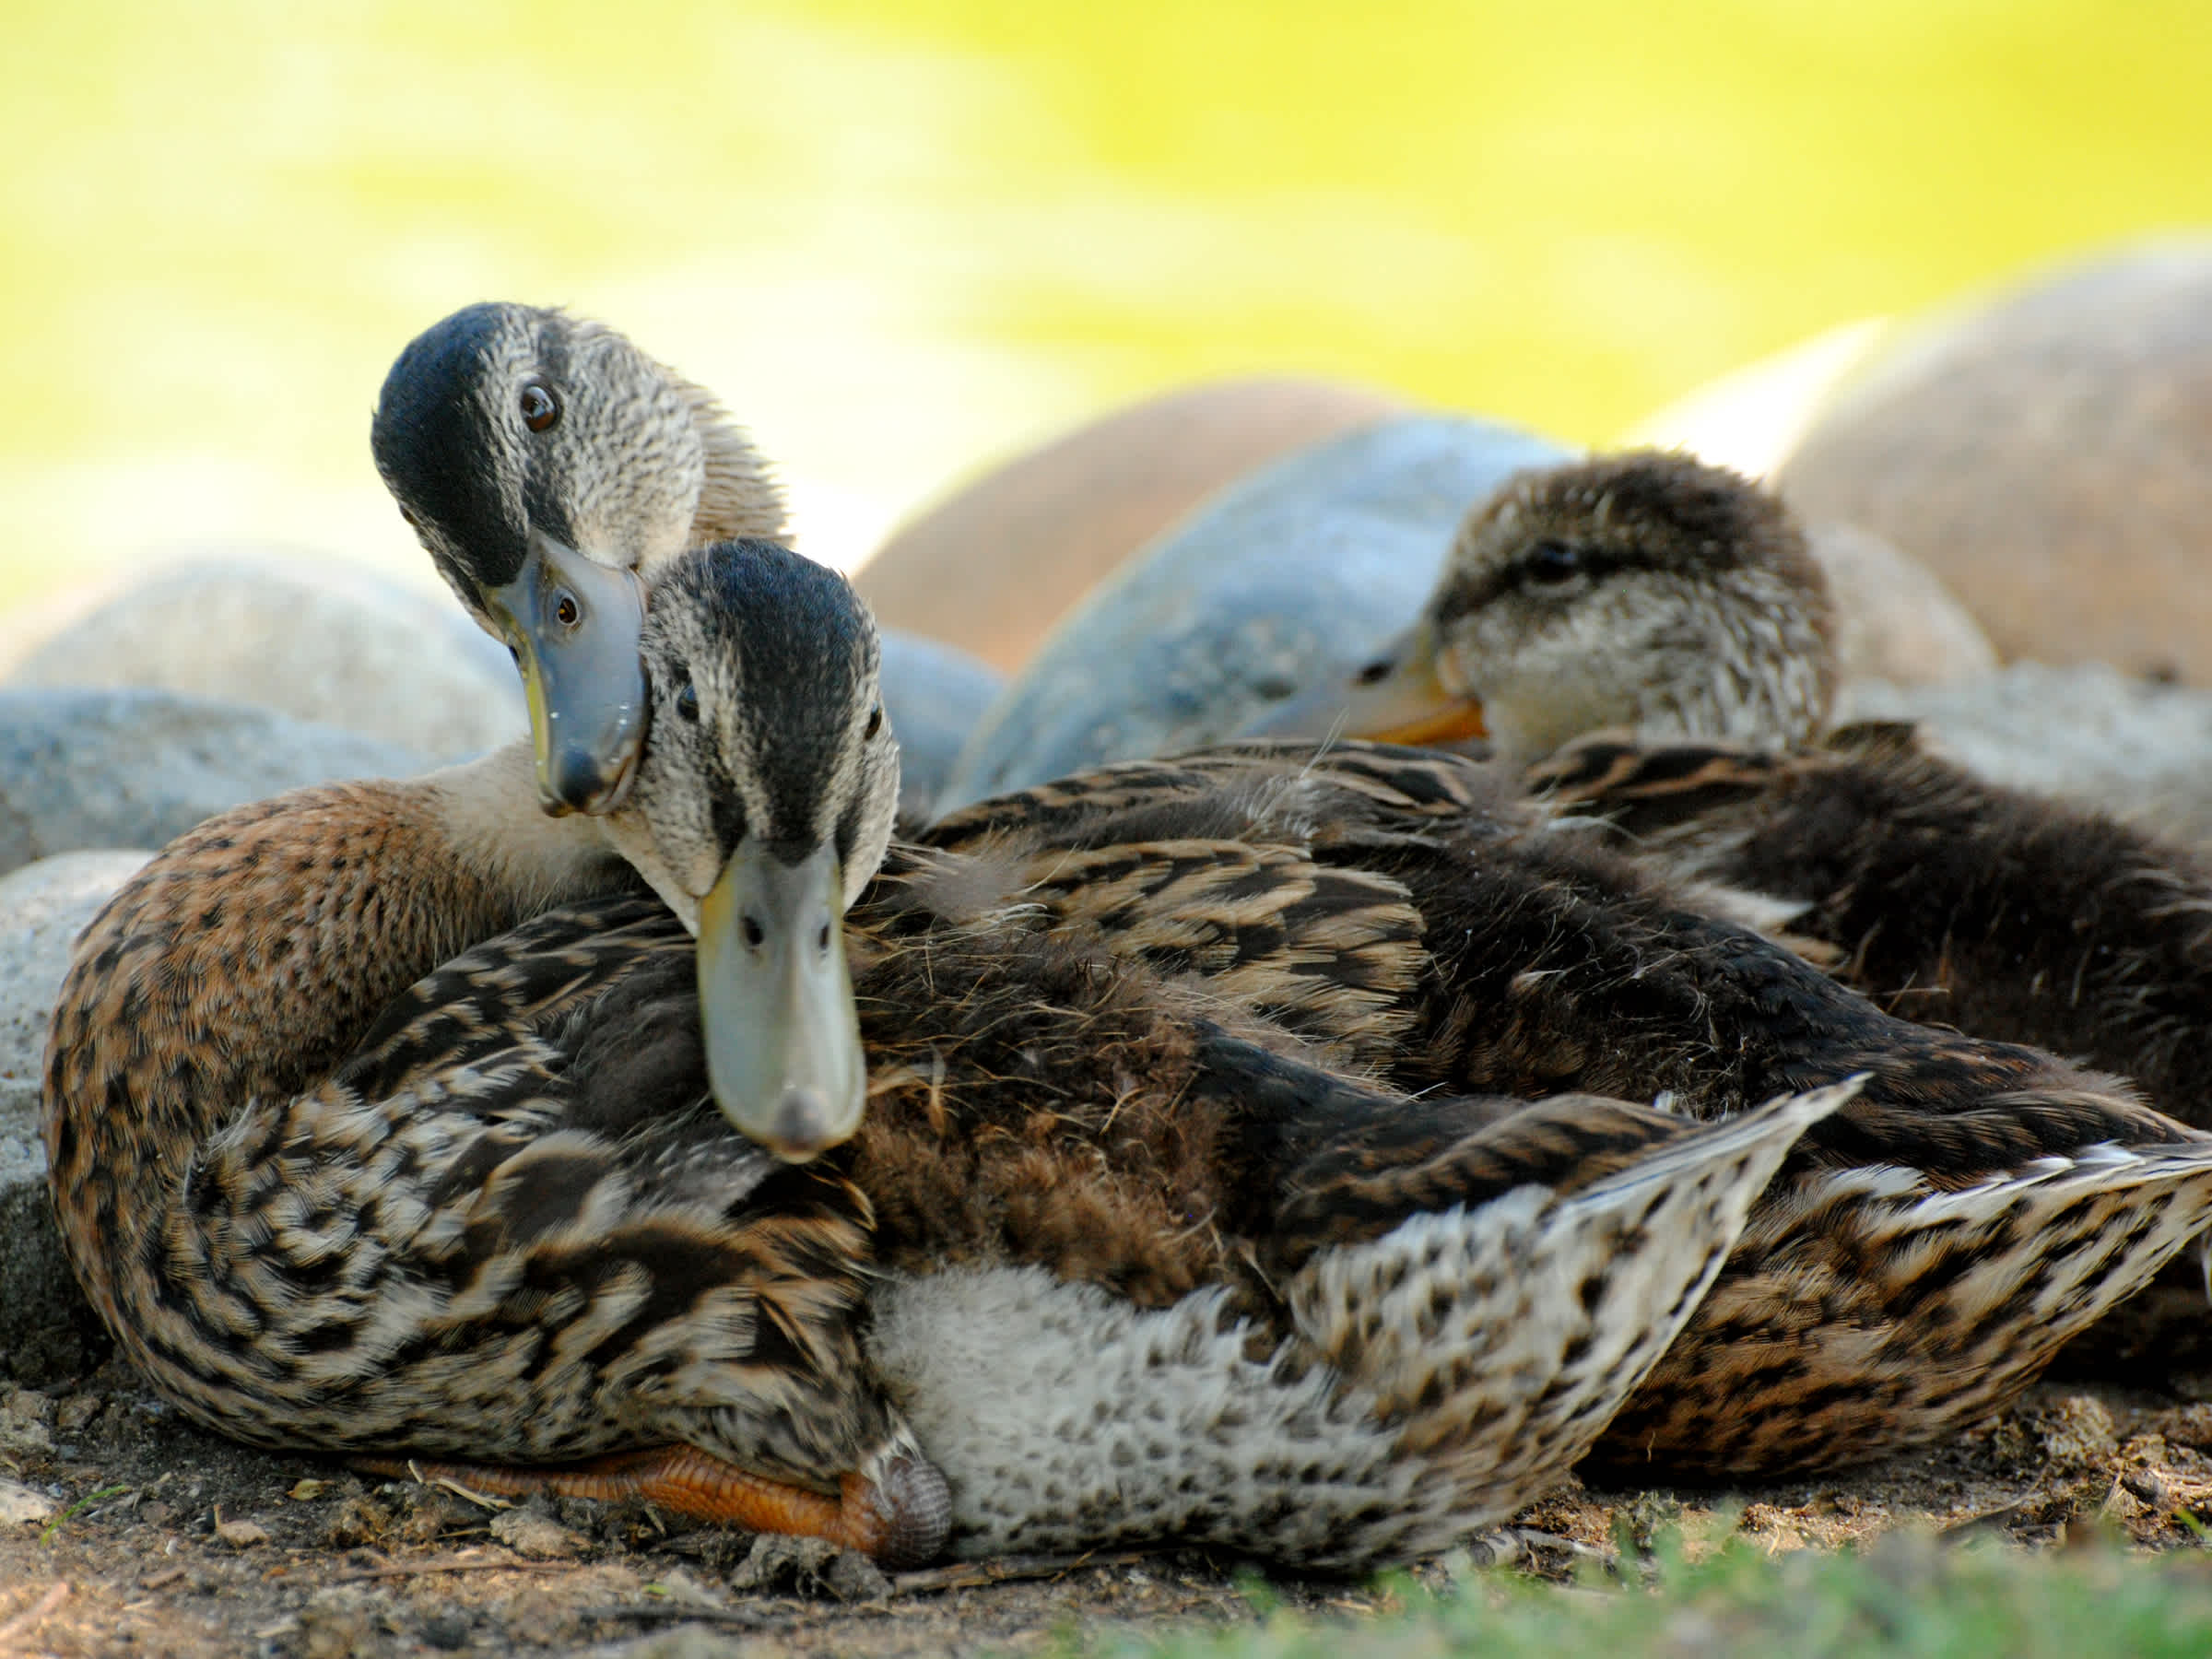 Ducks rubbing heads together.